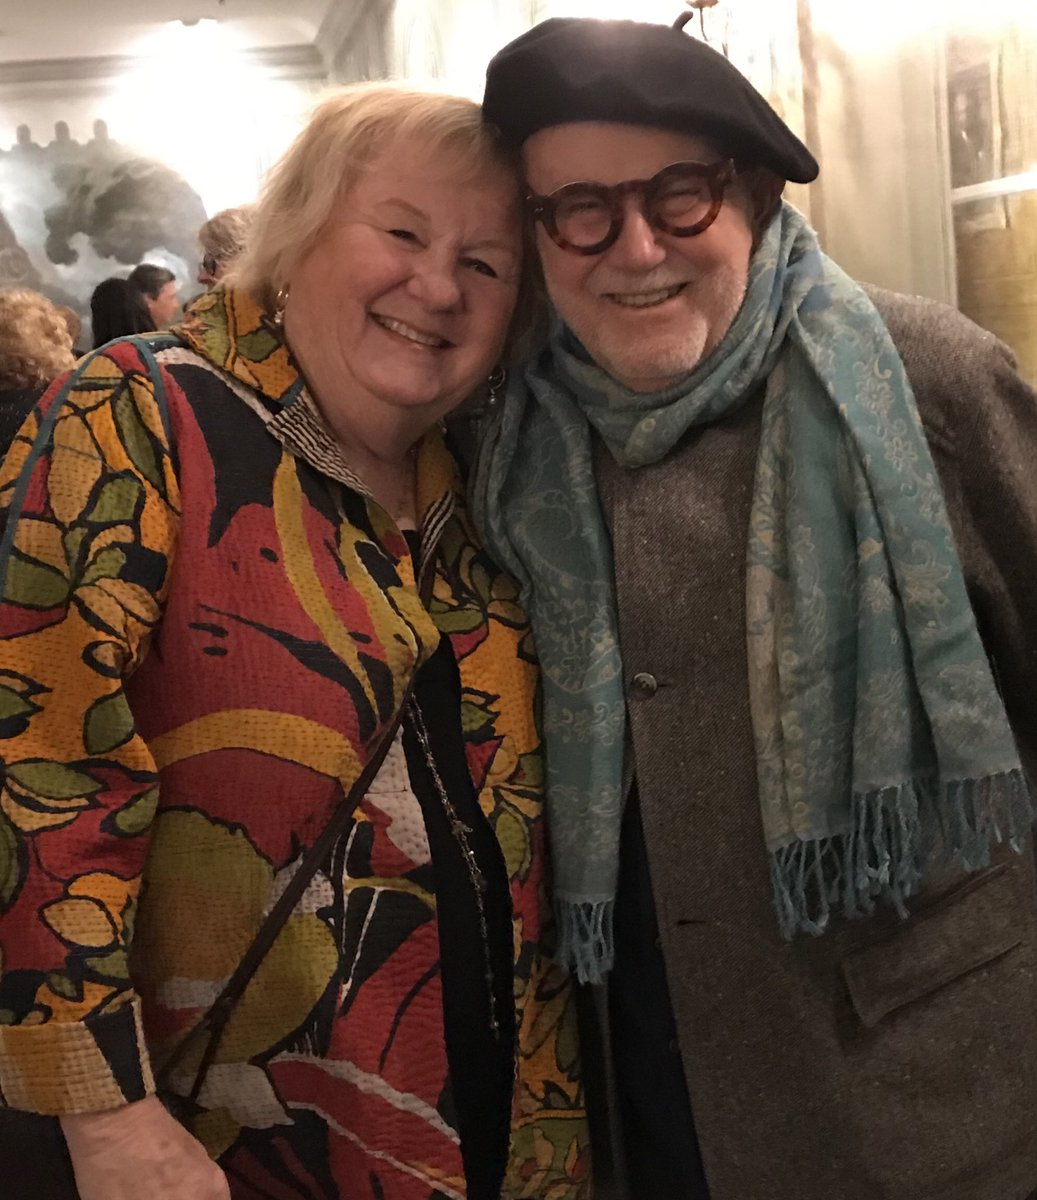 One of my many joyous evening with beloved friend Tomie dePaola. He never grew old. Rest in Joy, sweet Tomie. pic.twitter.com/99jT9DHIKh